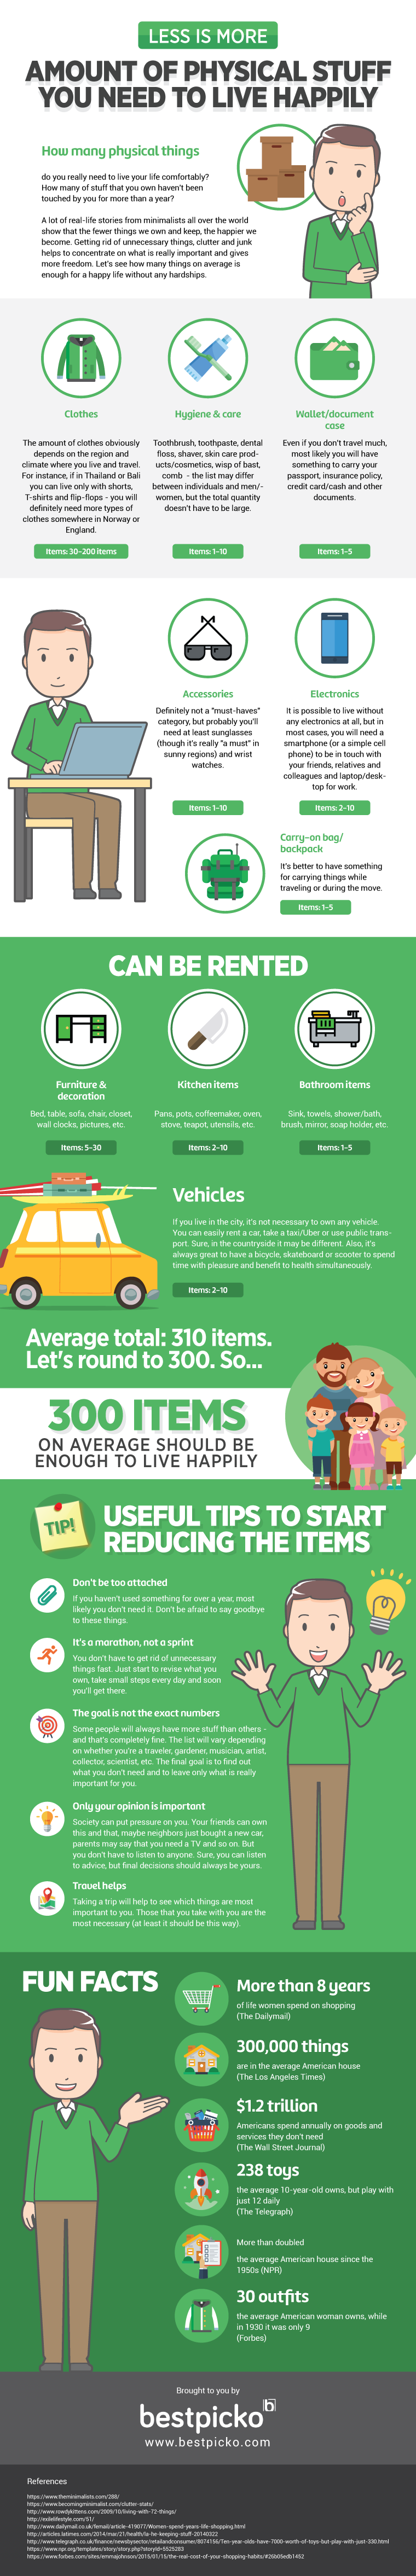 Amount_of_physical_stuff_Infographic_Bestpicko.png